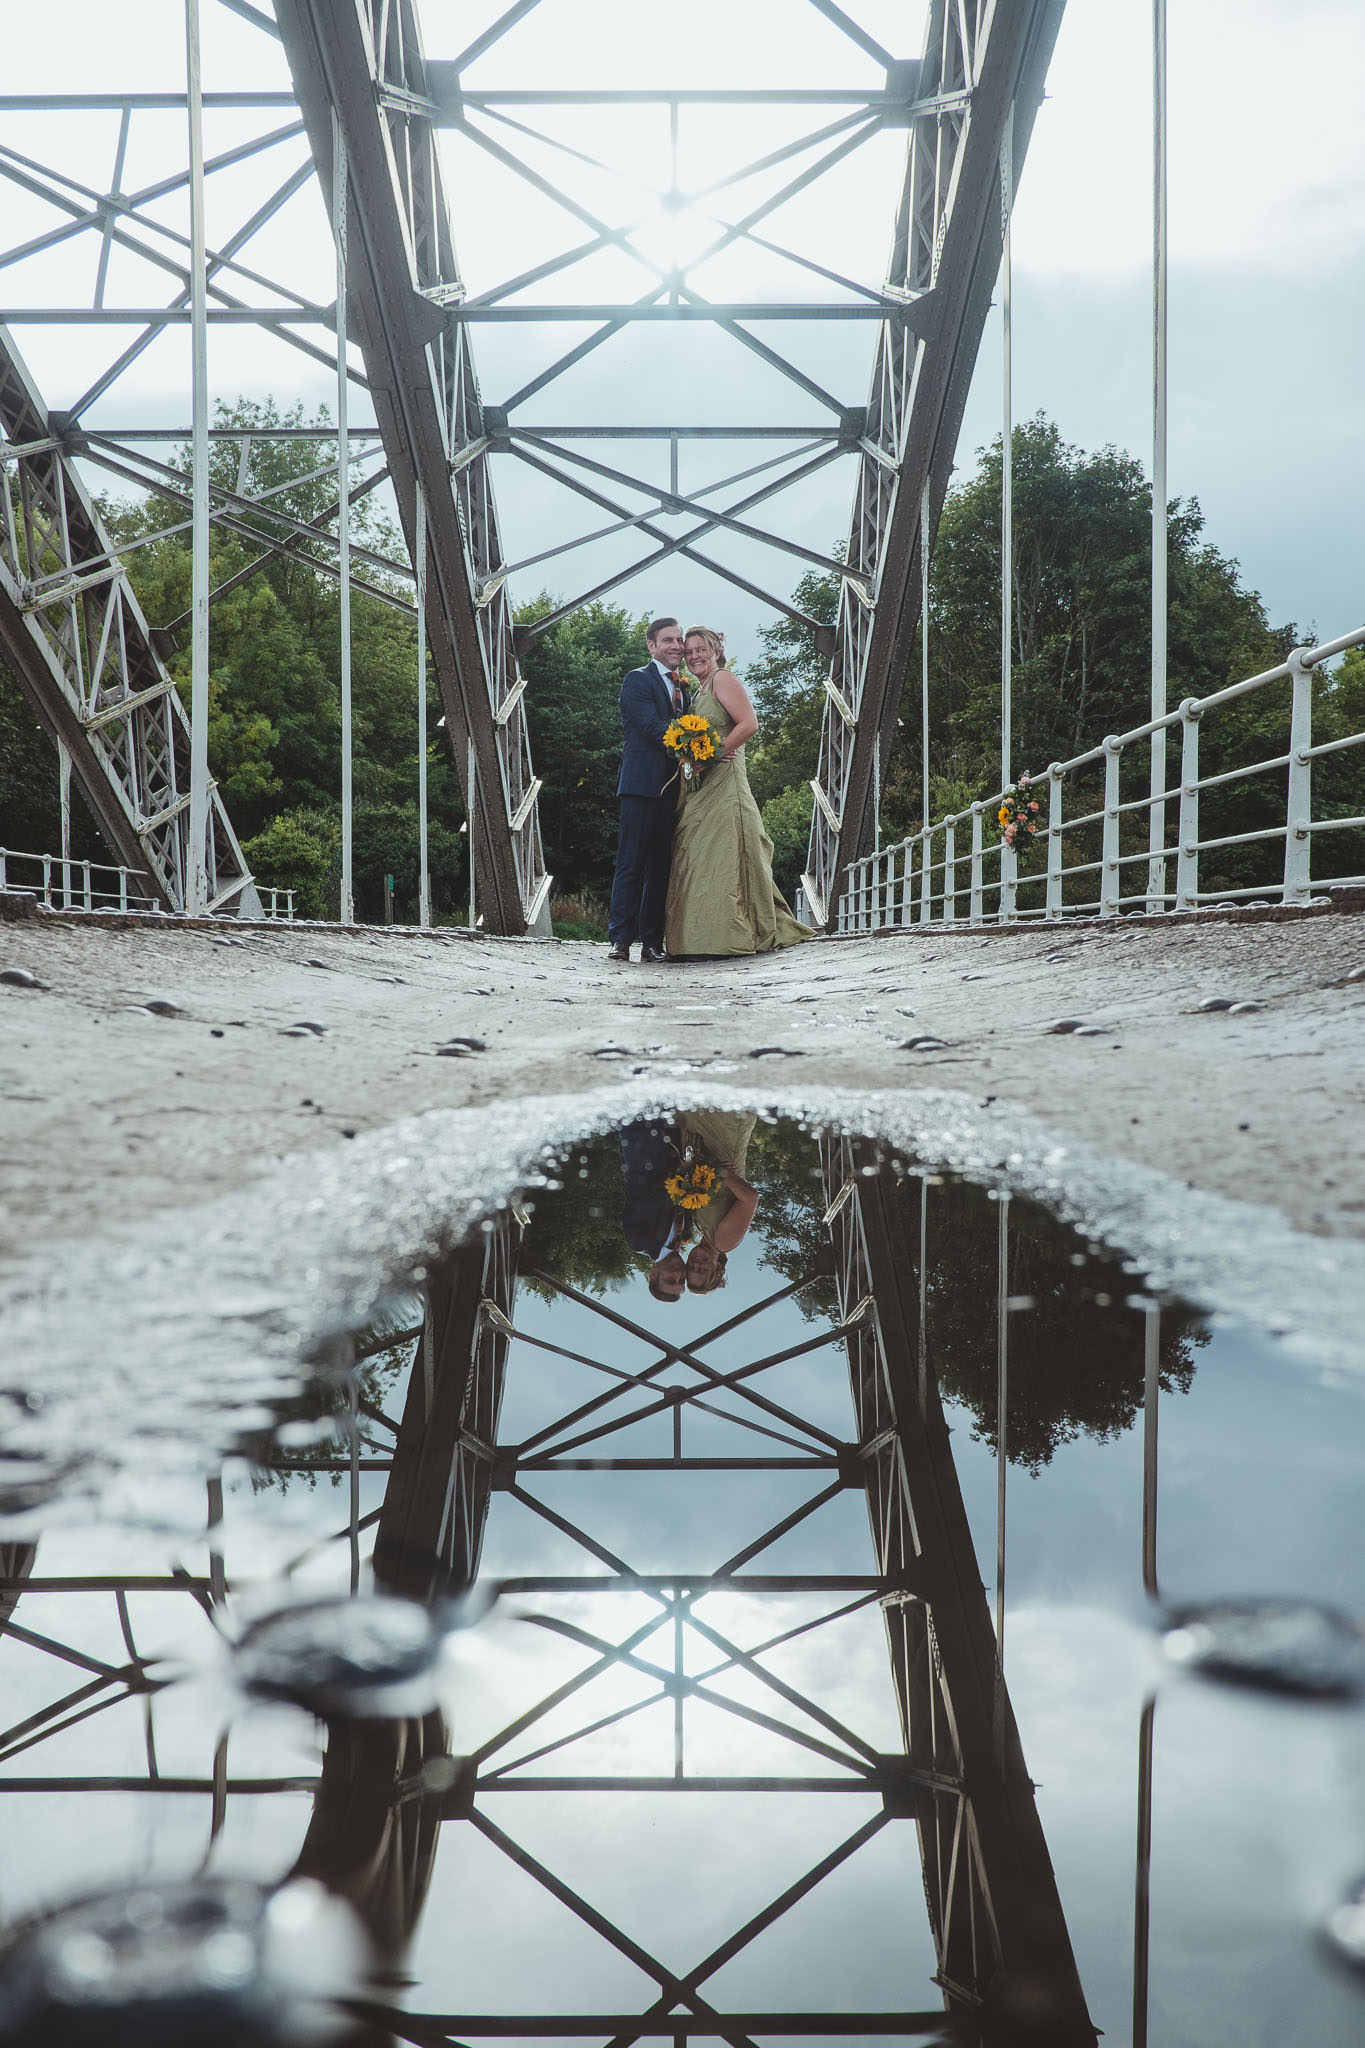 Bride and groom reflected in a puddle on a bridge